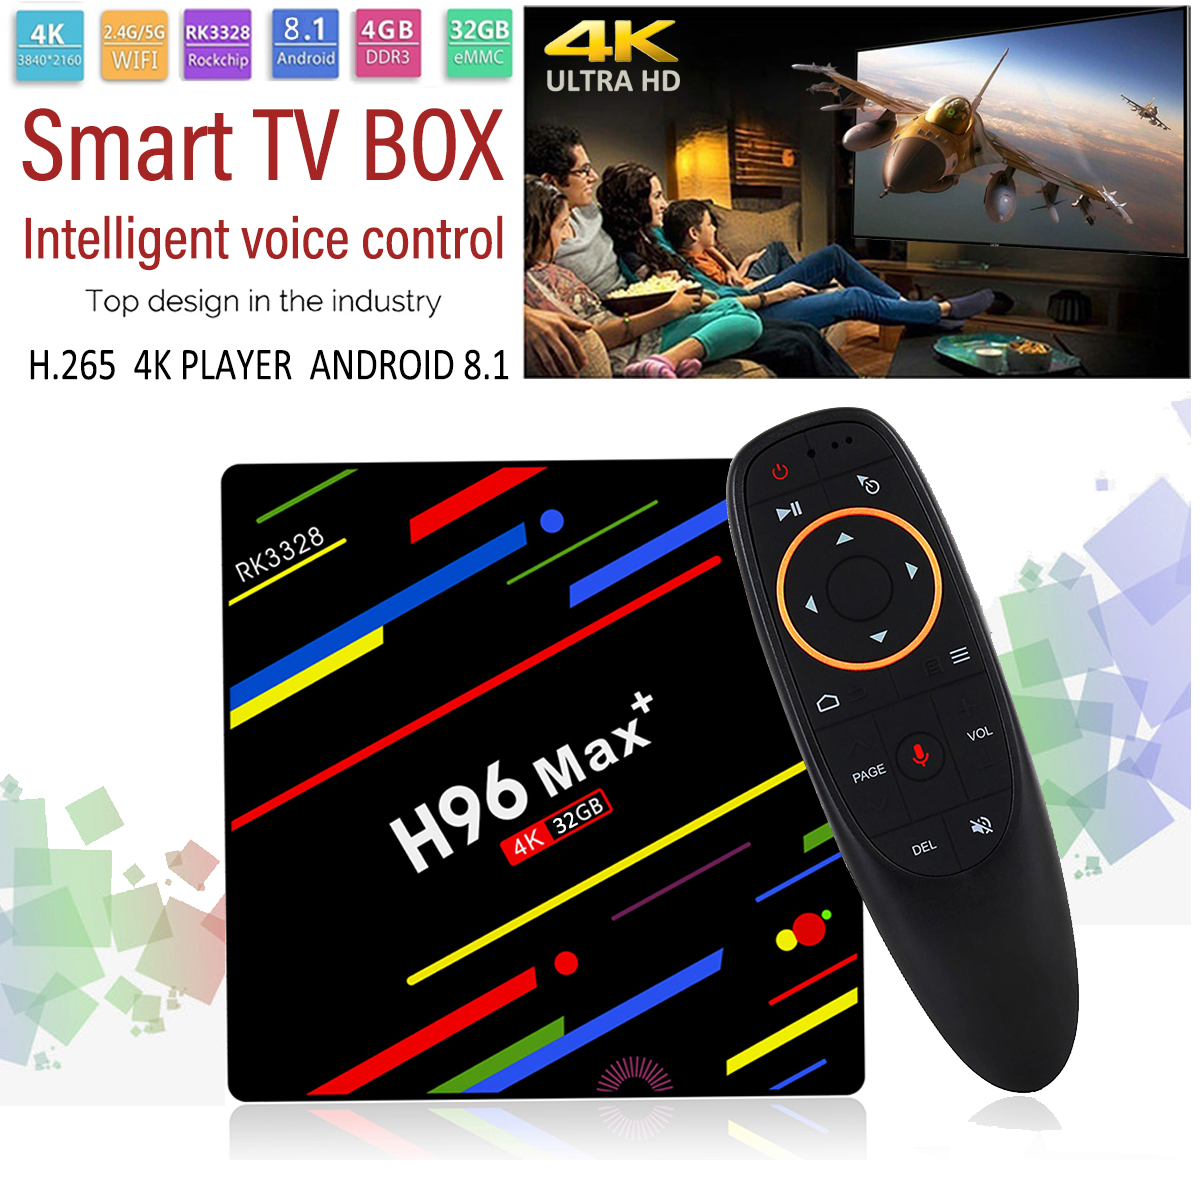 H96 Max Plus RK3328 4G/32G Android 8.1 USB3.0 Voice Control TV Box Support